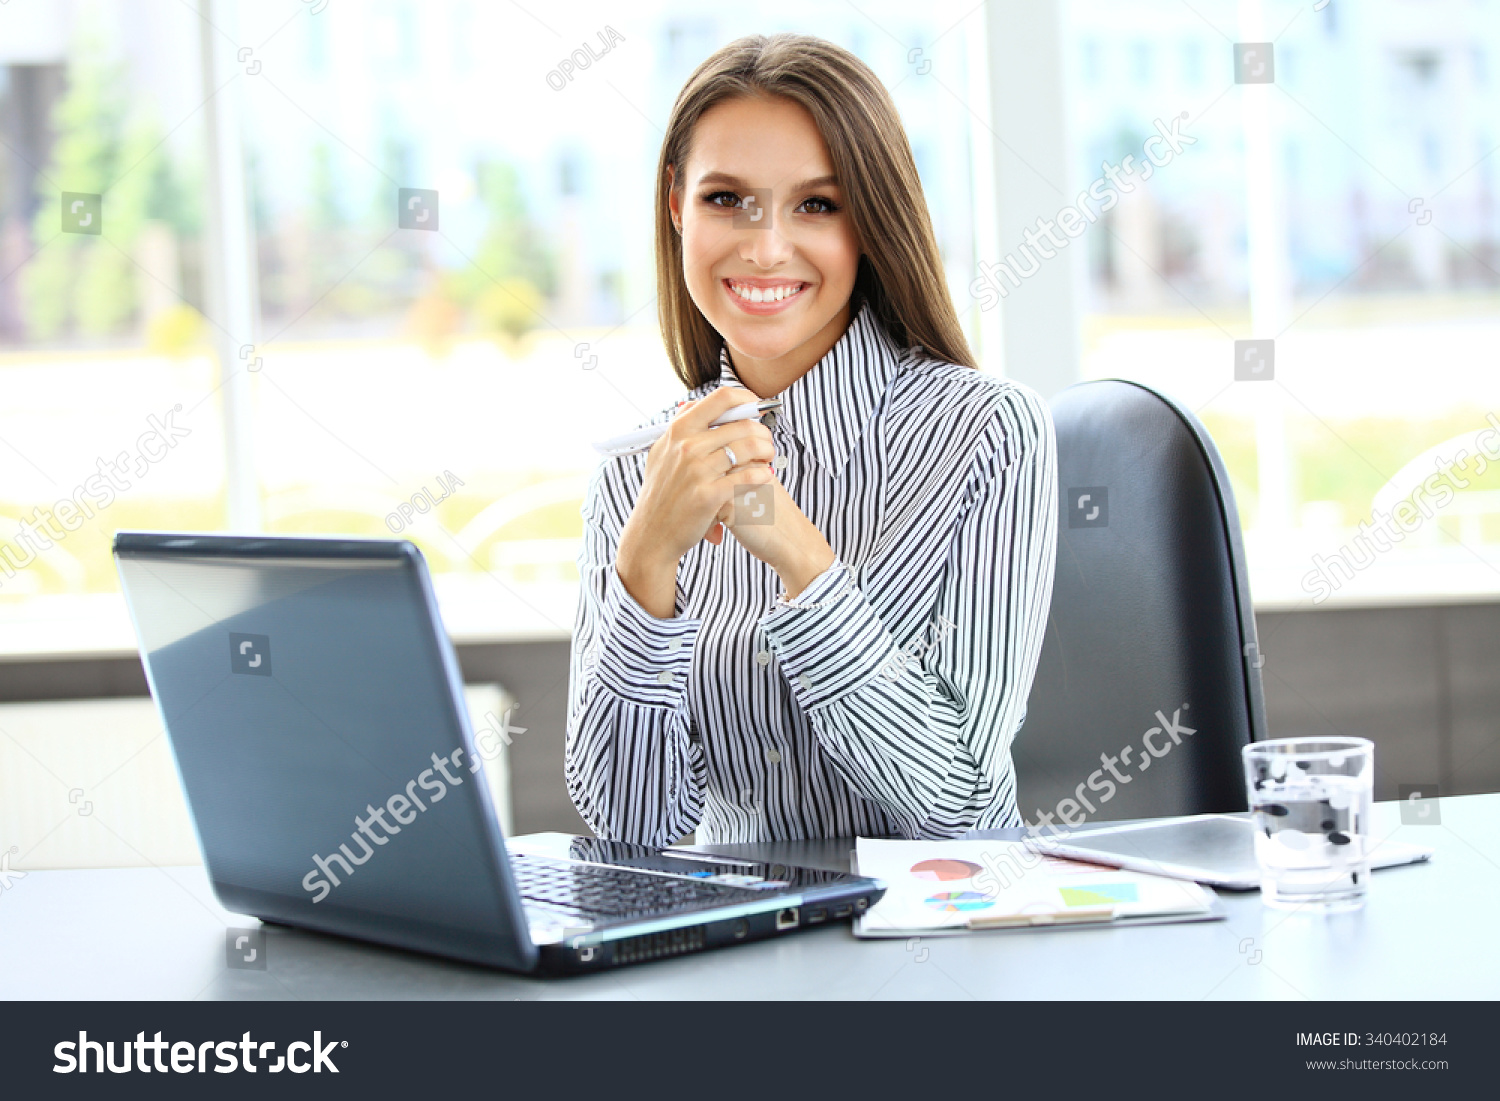 Portrait Of A Young Business Woman Using Laptop At Office Stock Photo